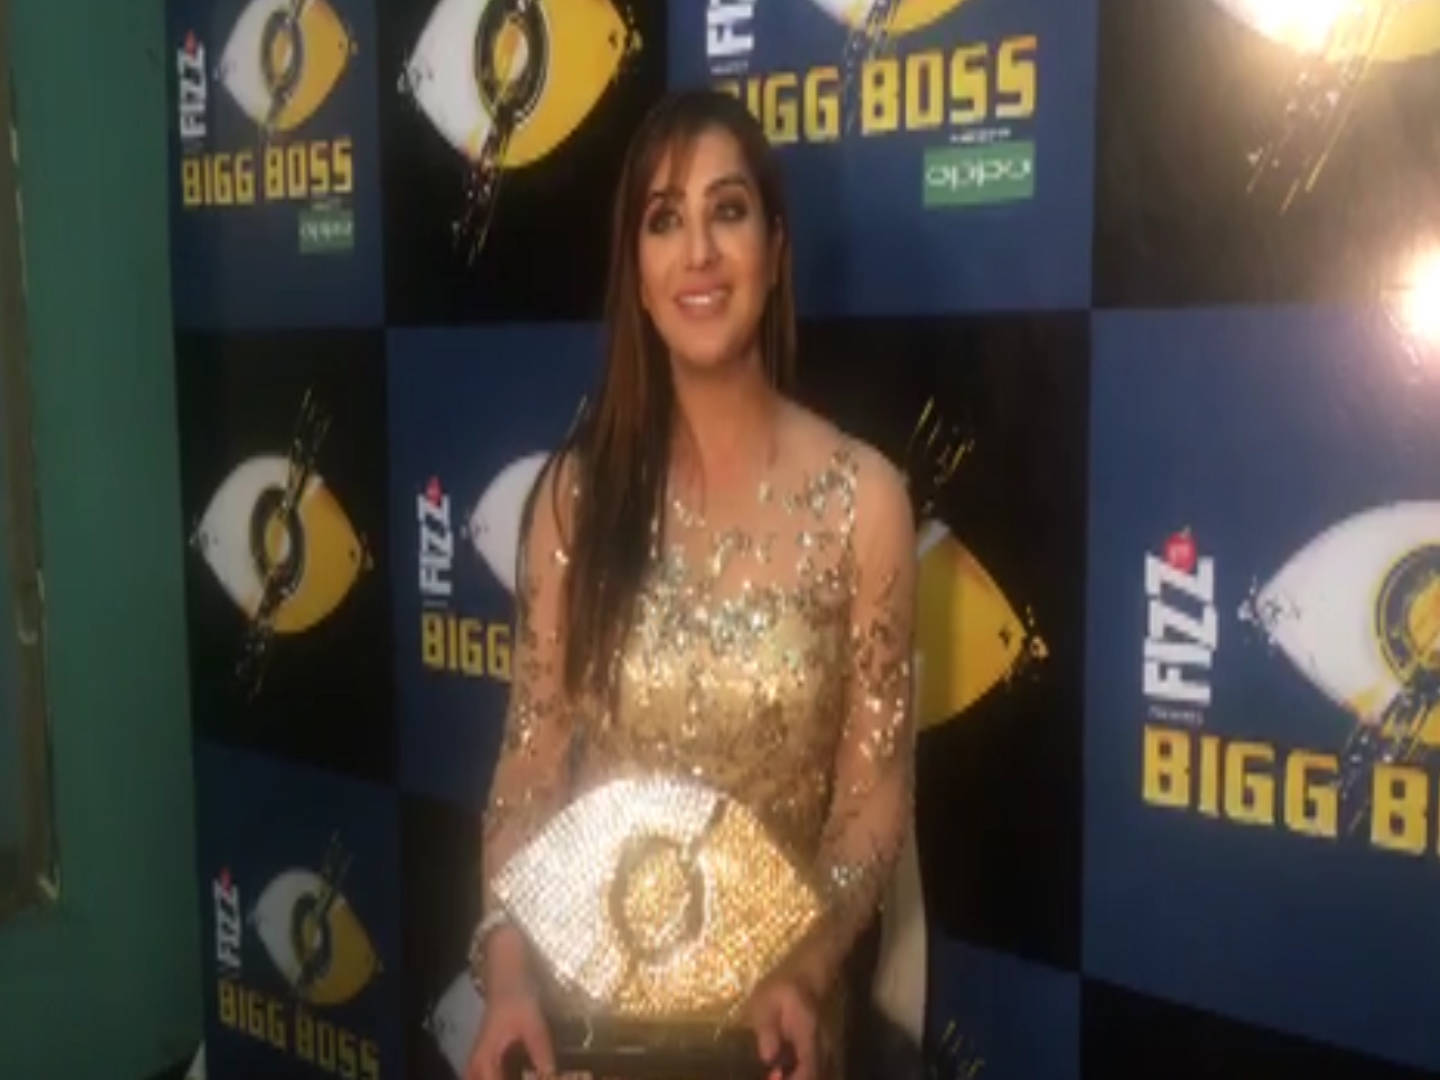 Bigg Boss 11 Finale Episode Highlights Shilpa Shinde Is The Winner Of The Show-3641